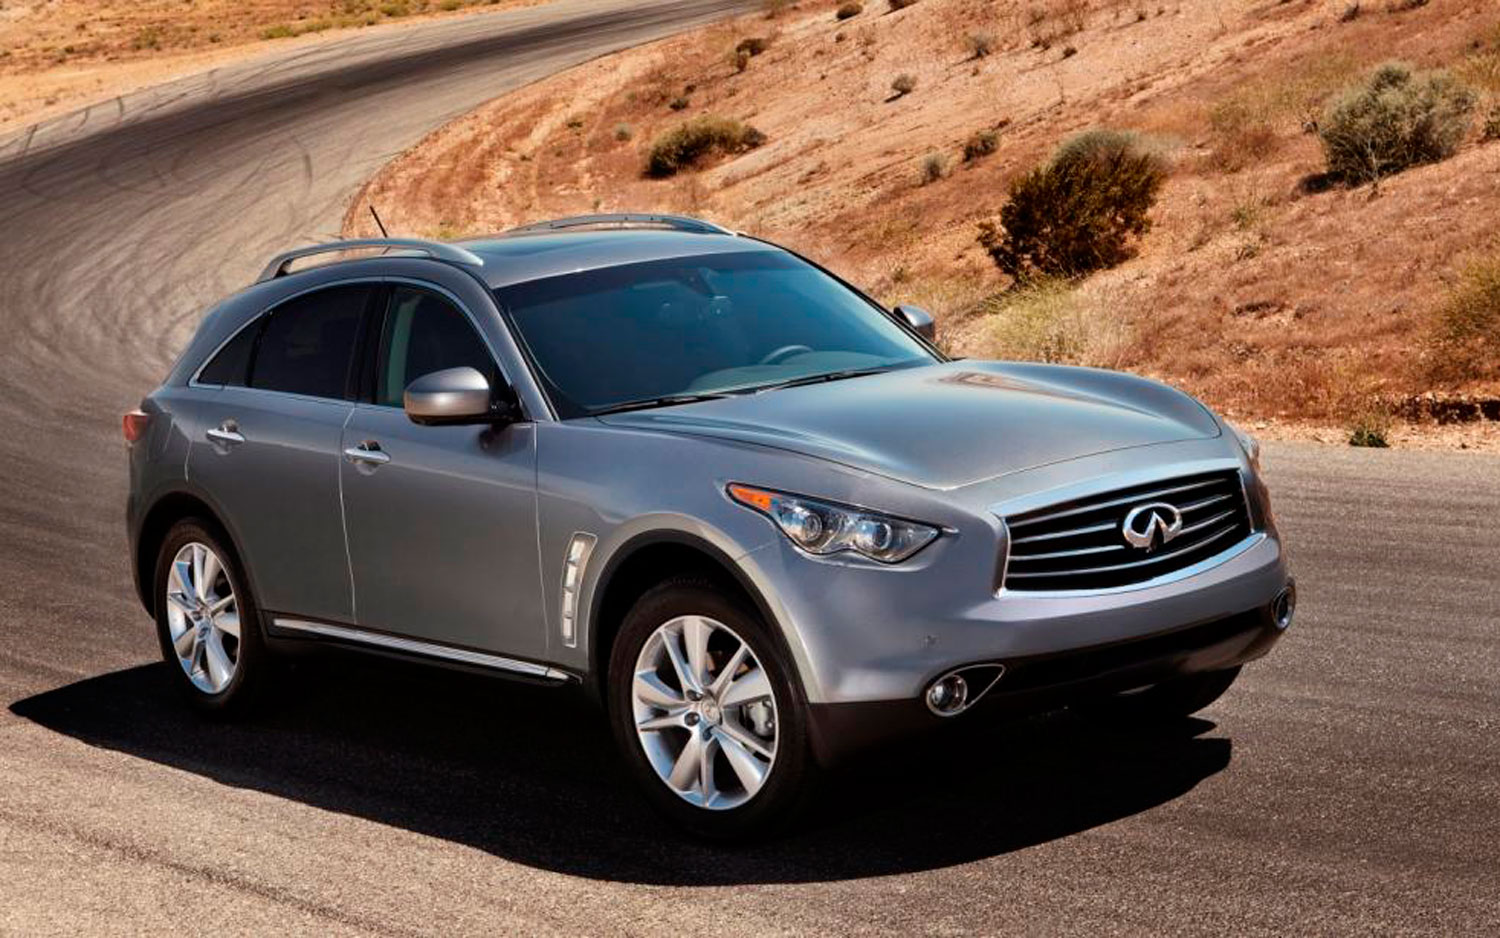 2012 Infiniti FX35 Front Three Quarter2